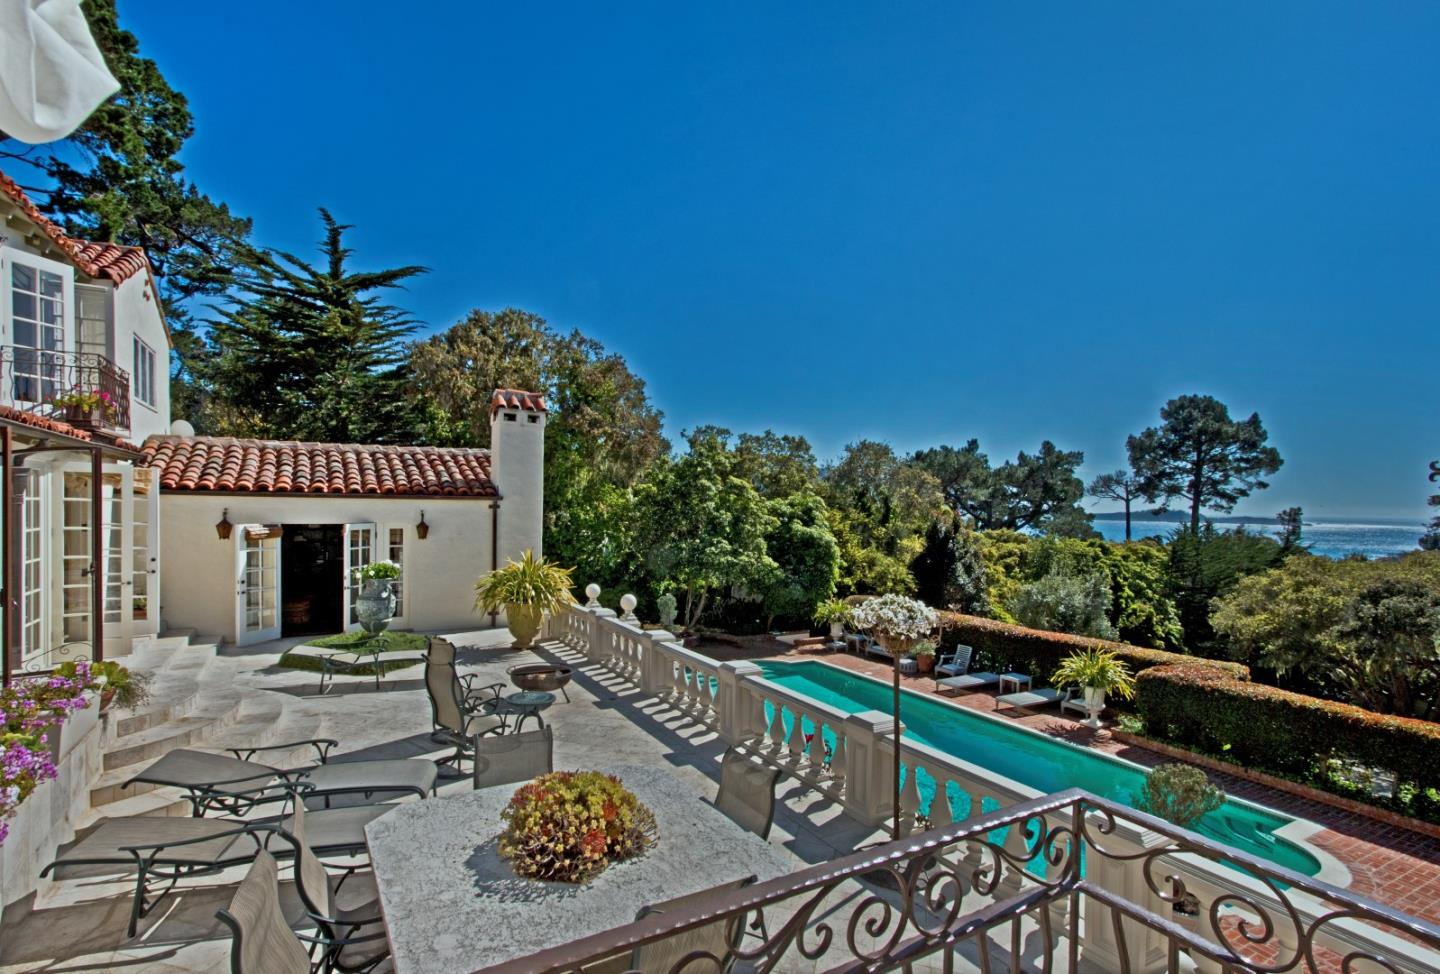 Additional photo for property listing at 1531 Riata Road  Pebble Beach, Kalifornien 93953 Vereinigte Staaten